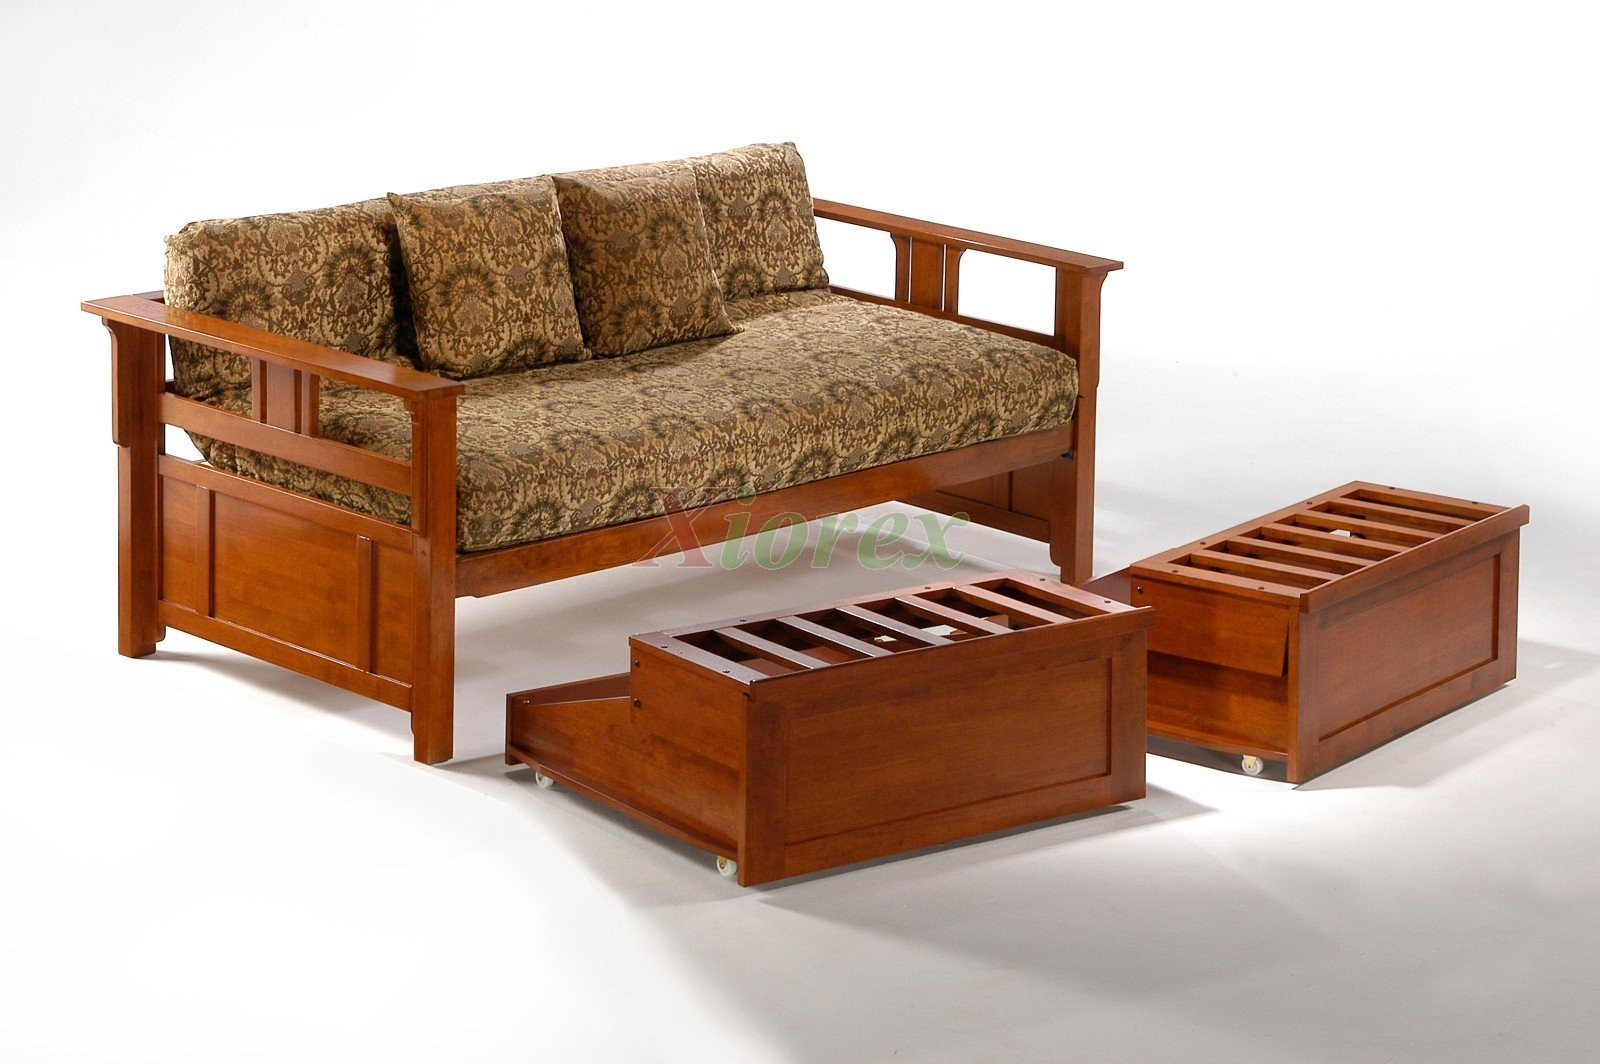 Night and day teddy roosevelt daybed with trundle guest bed xiorex - Solid wood trundle bed with drawers ...